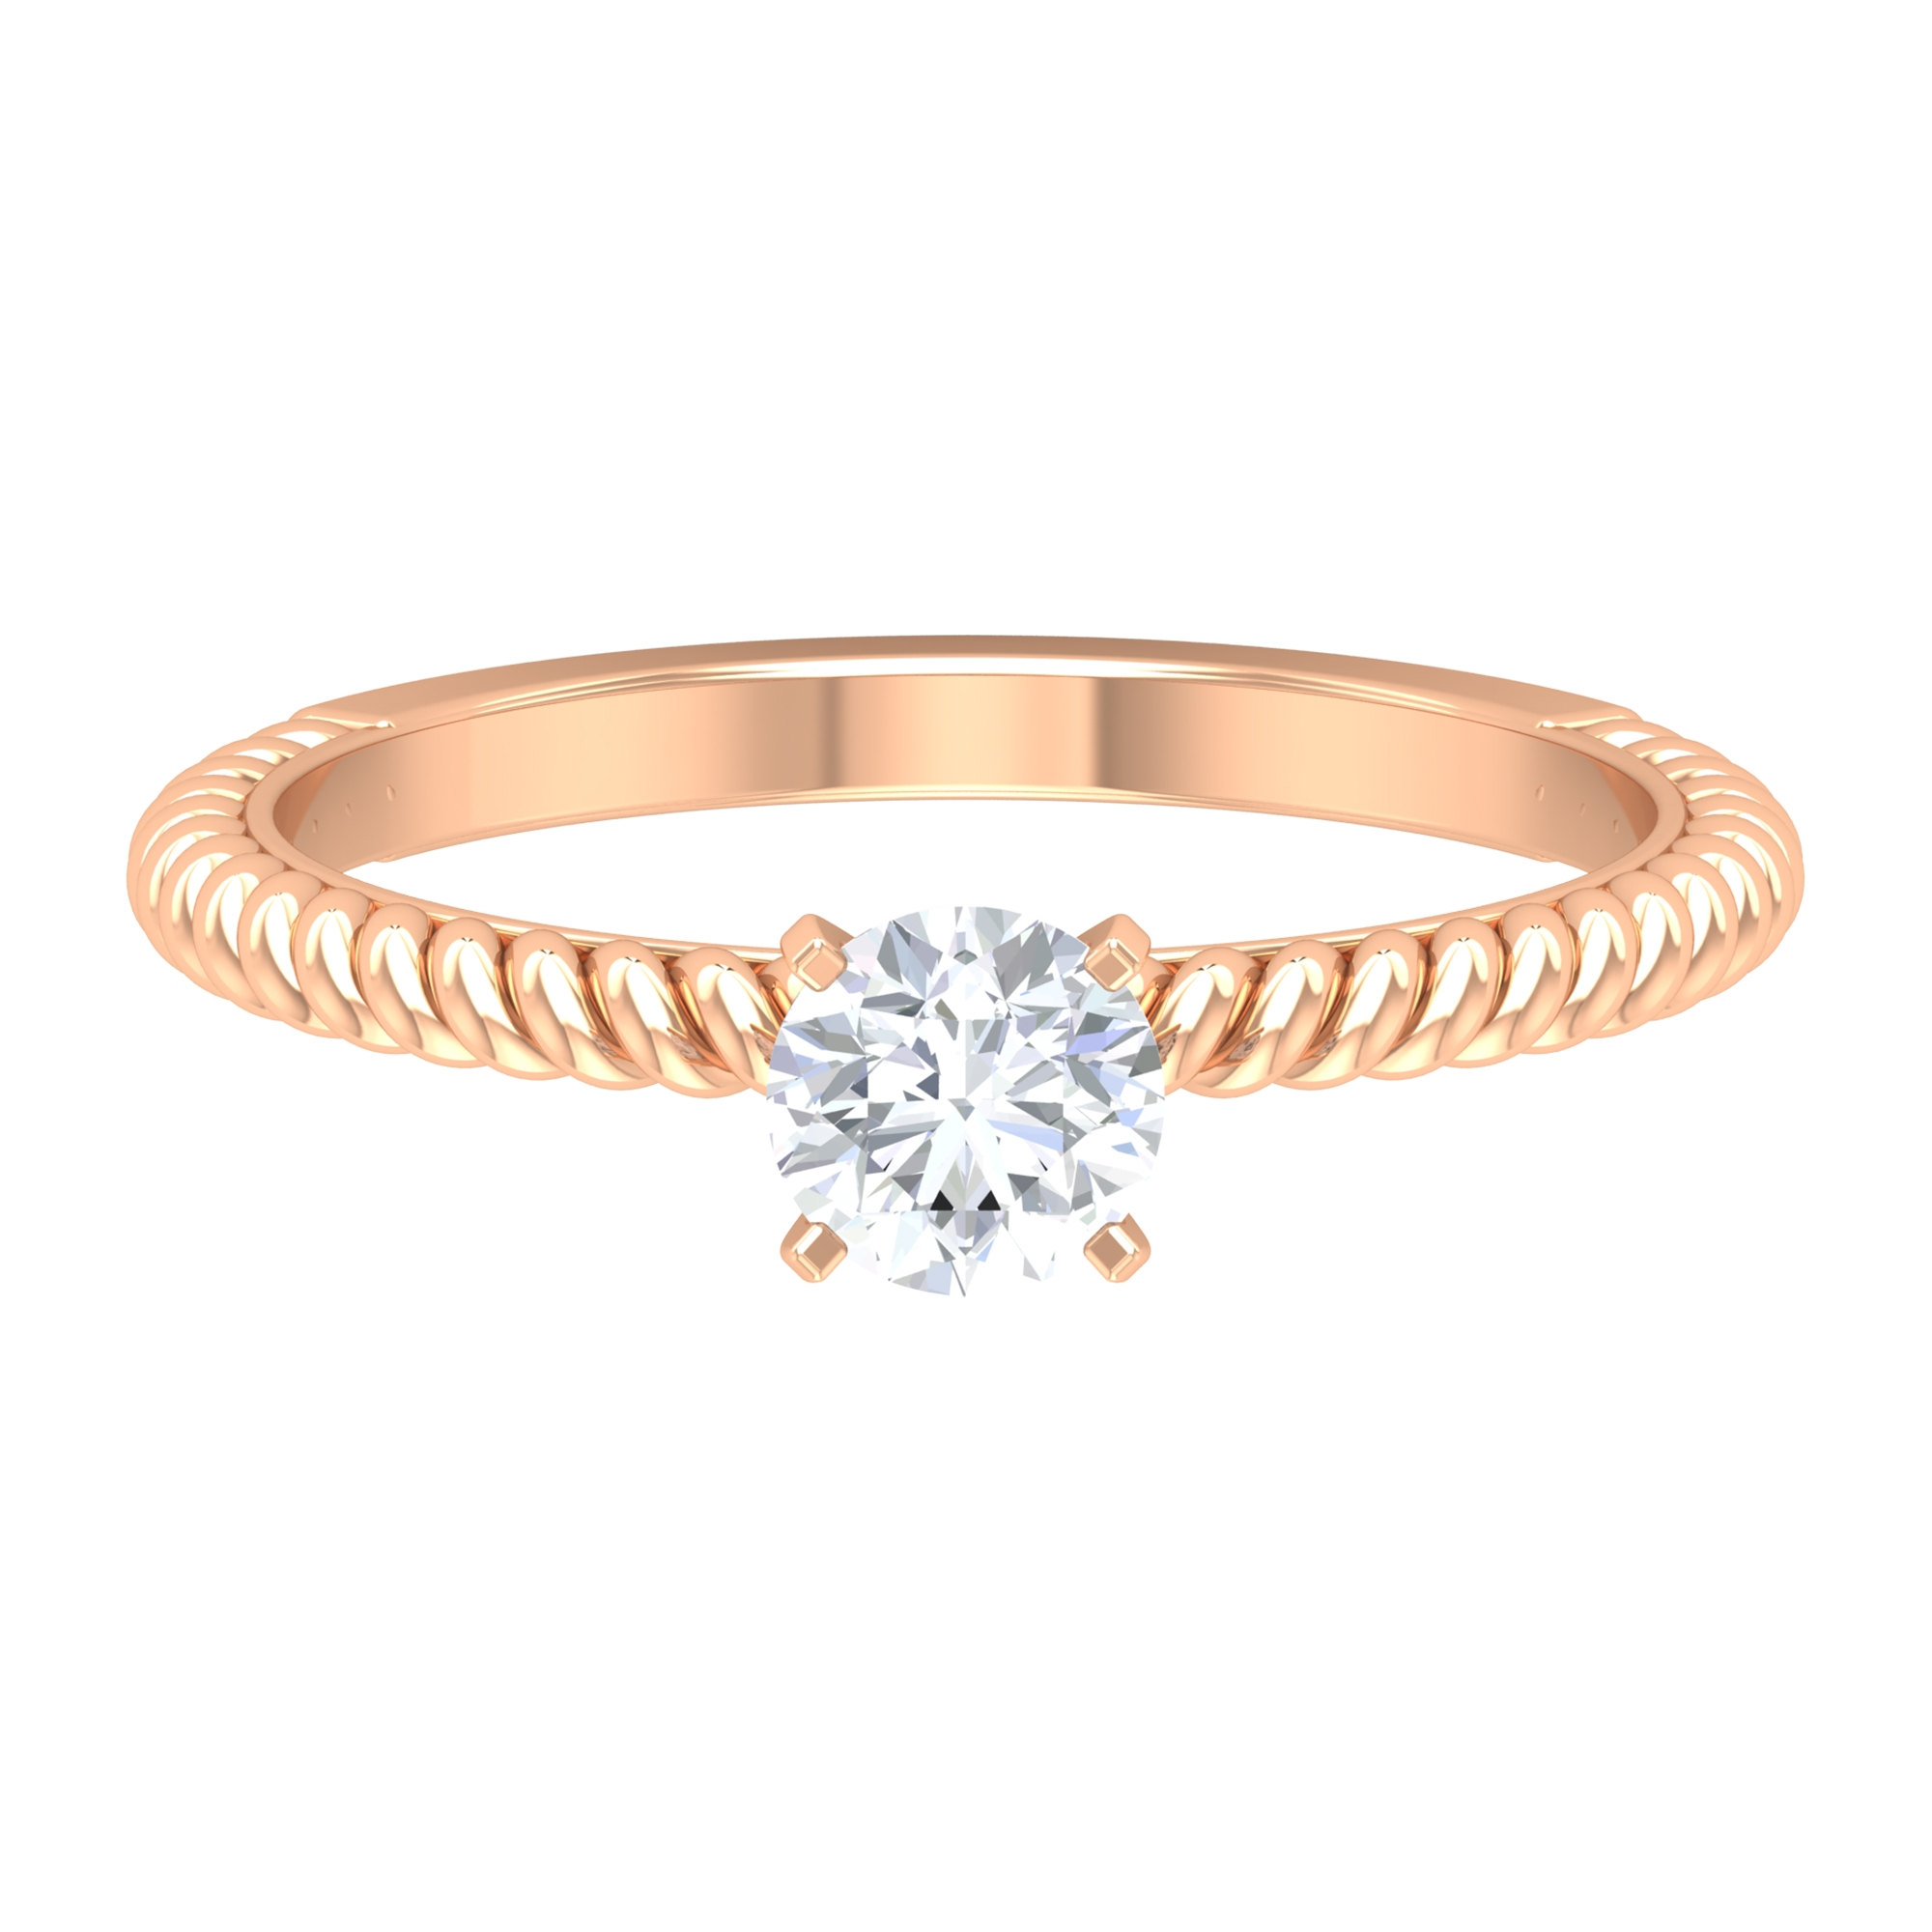 5 MM Round Cut Diamond Solitaire Ring in Peg Head Setting with Twisted Rope Details